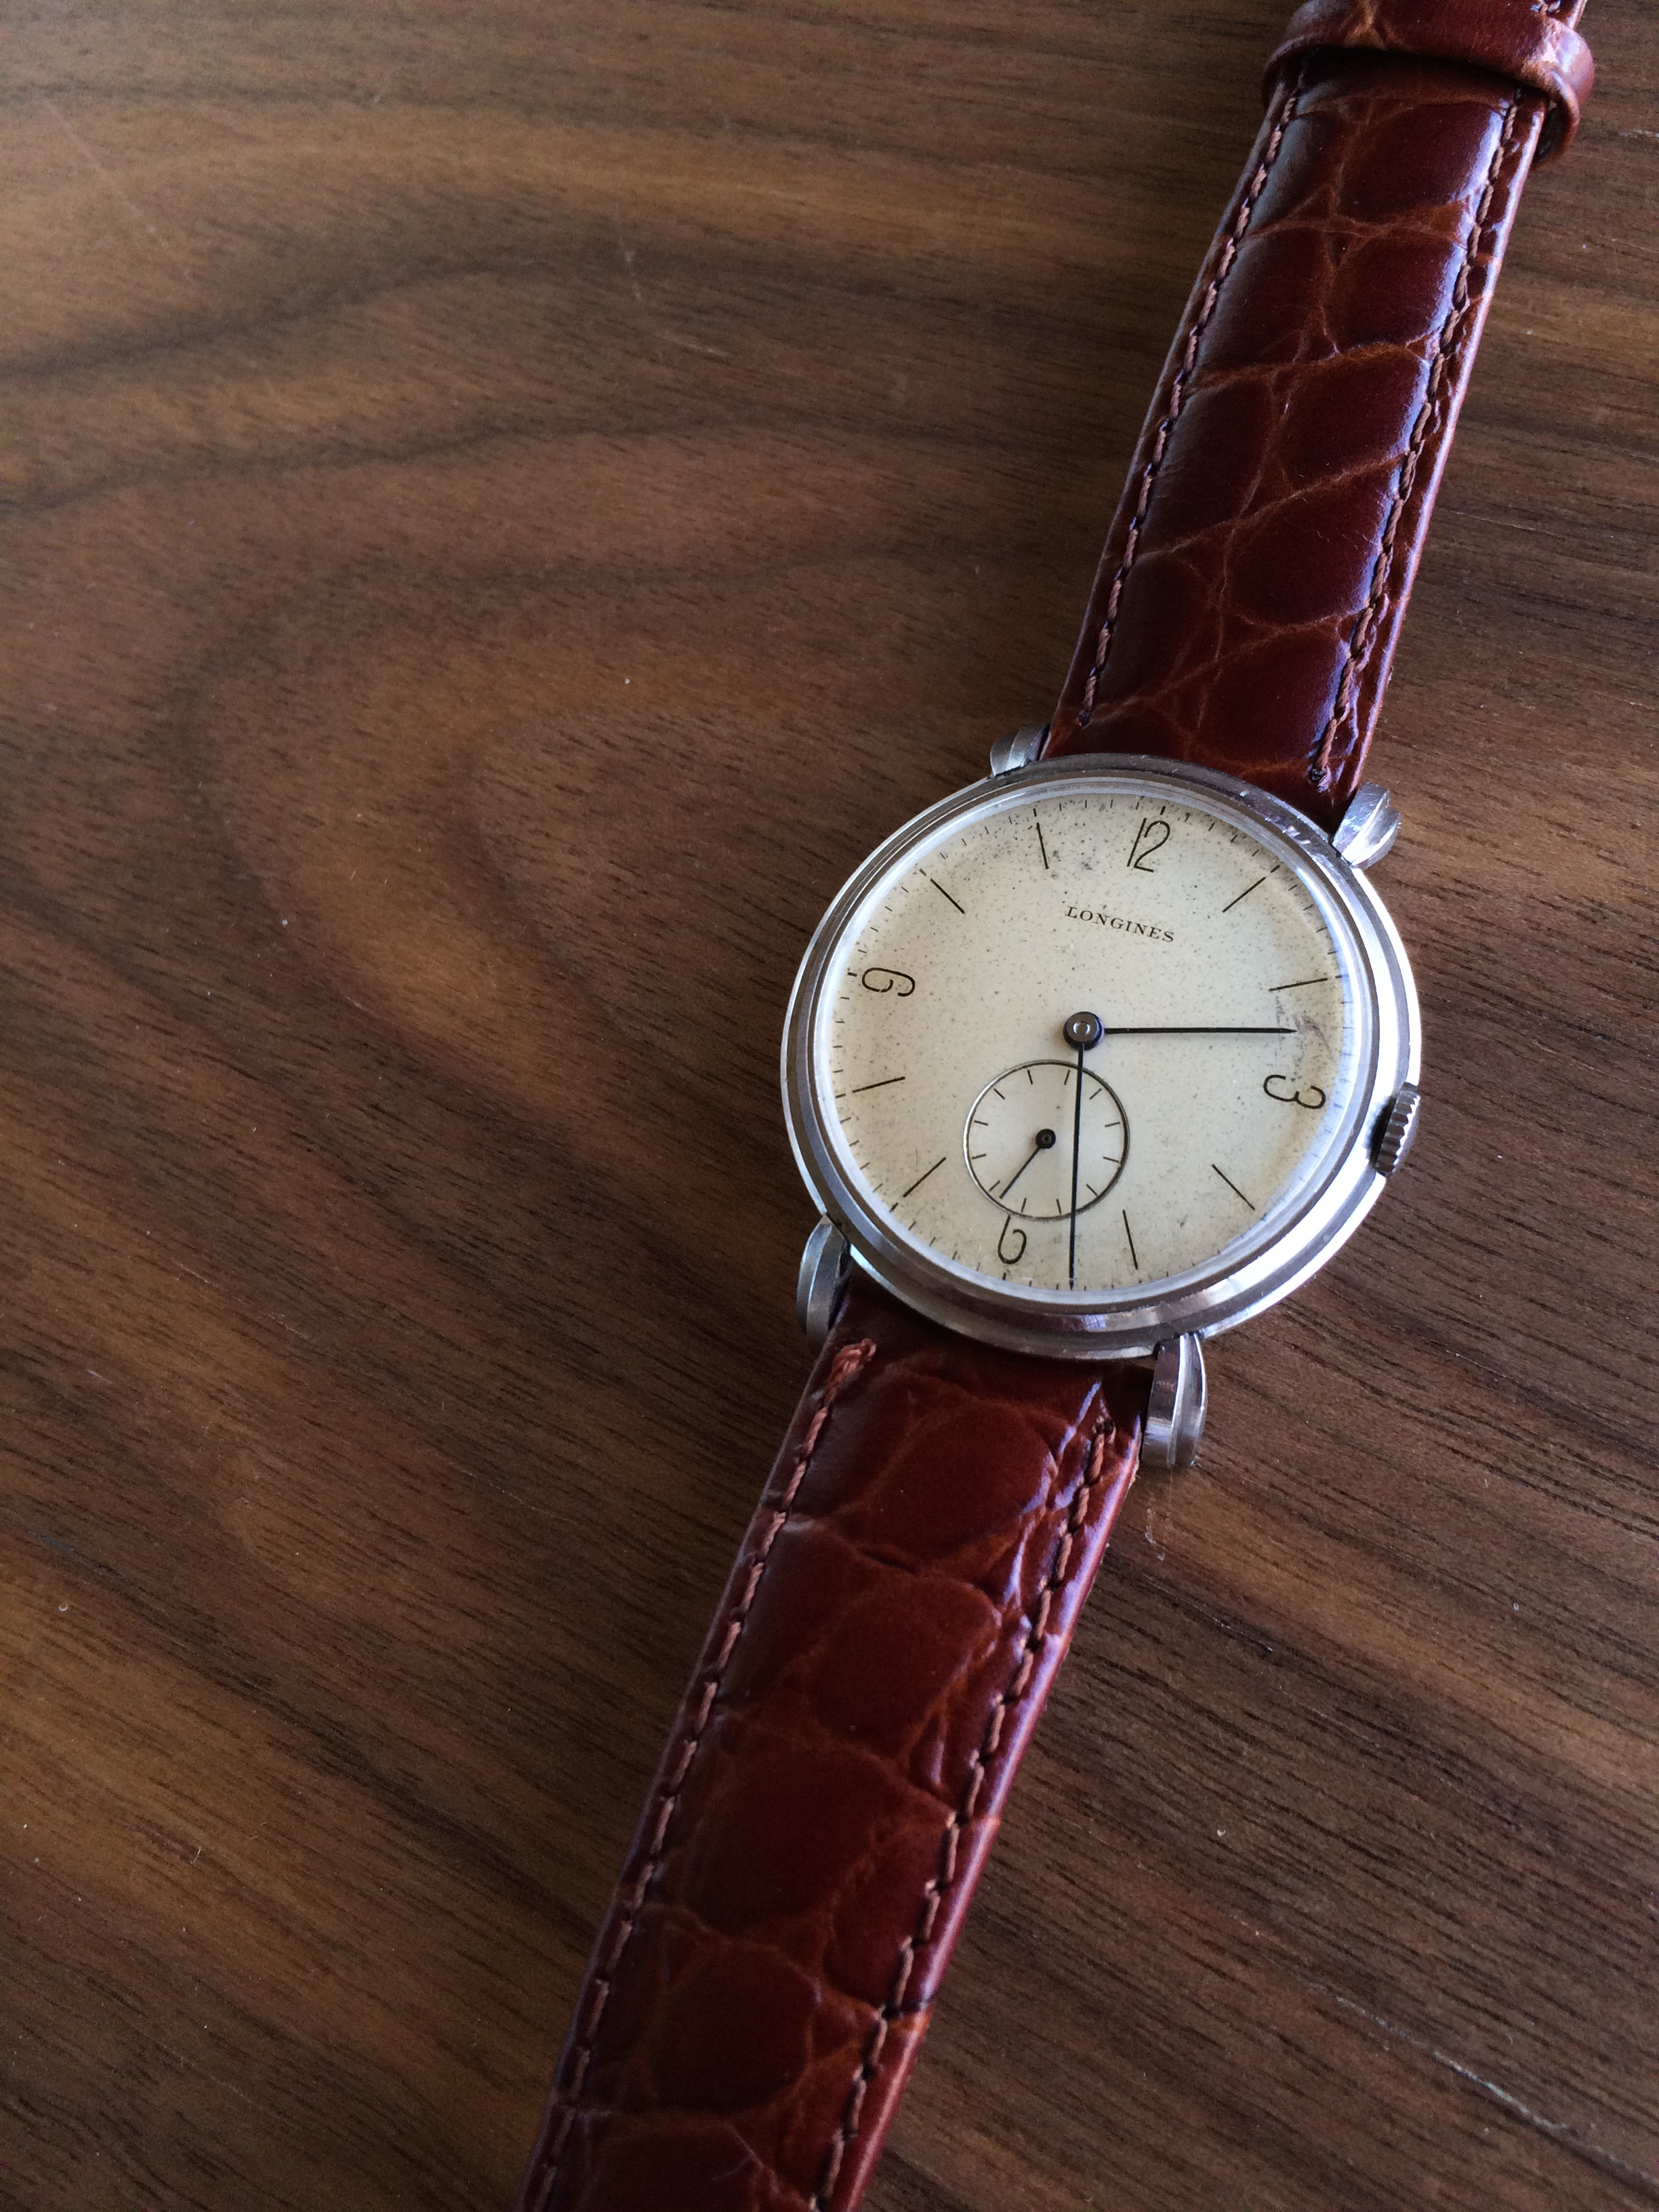 find longines watch serial number